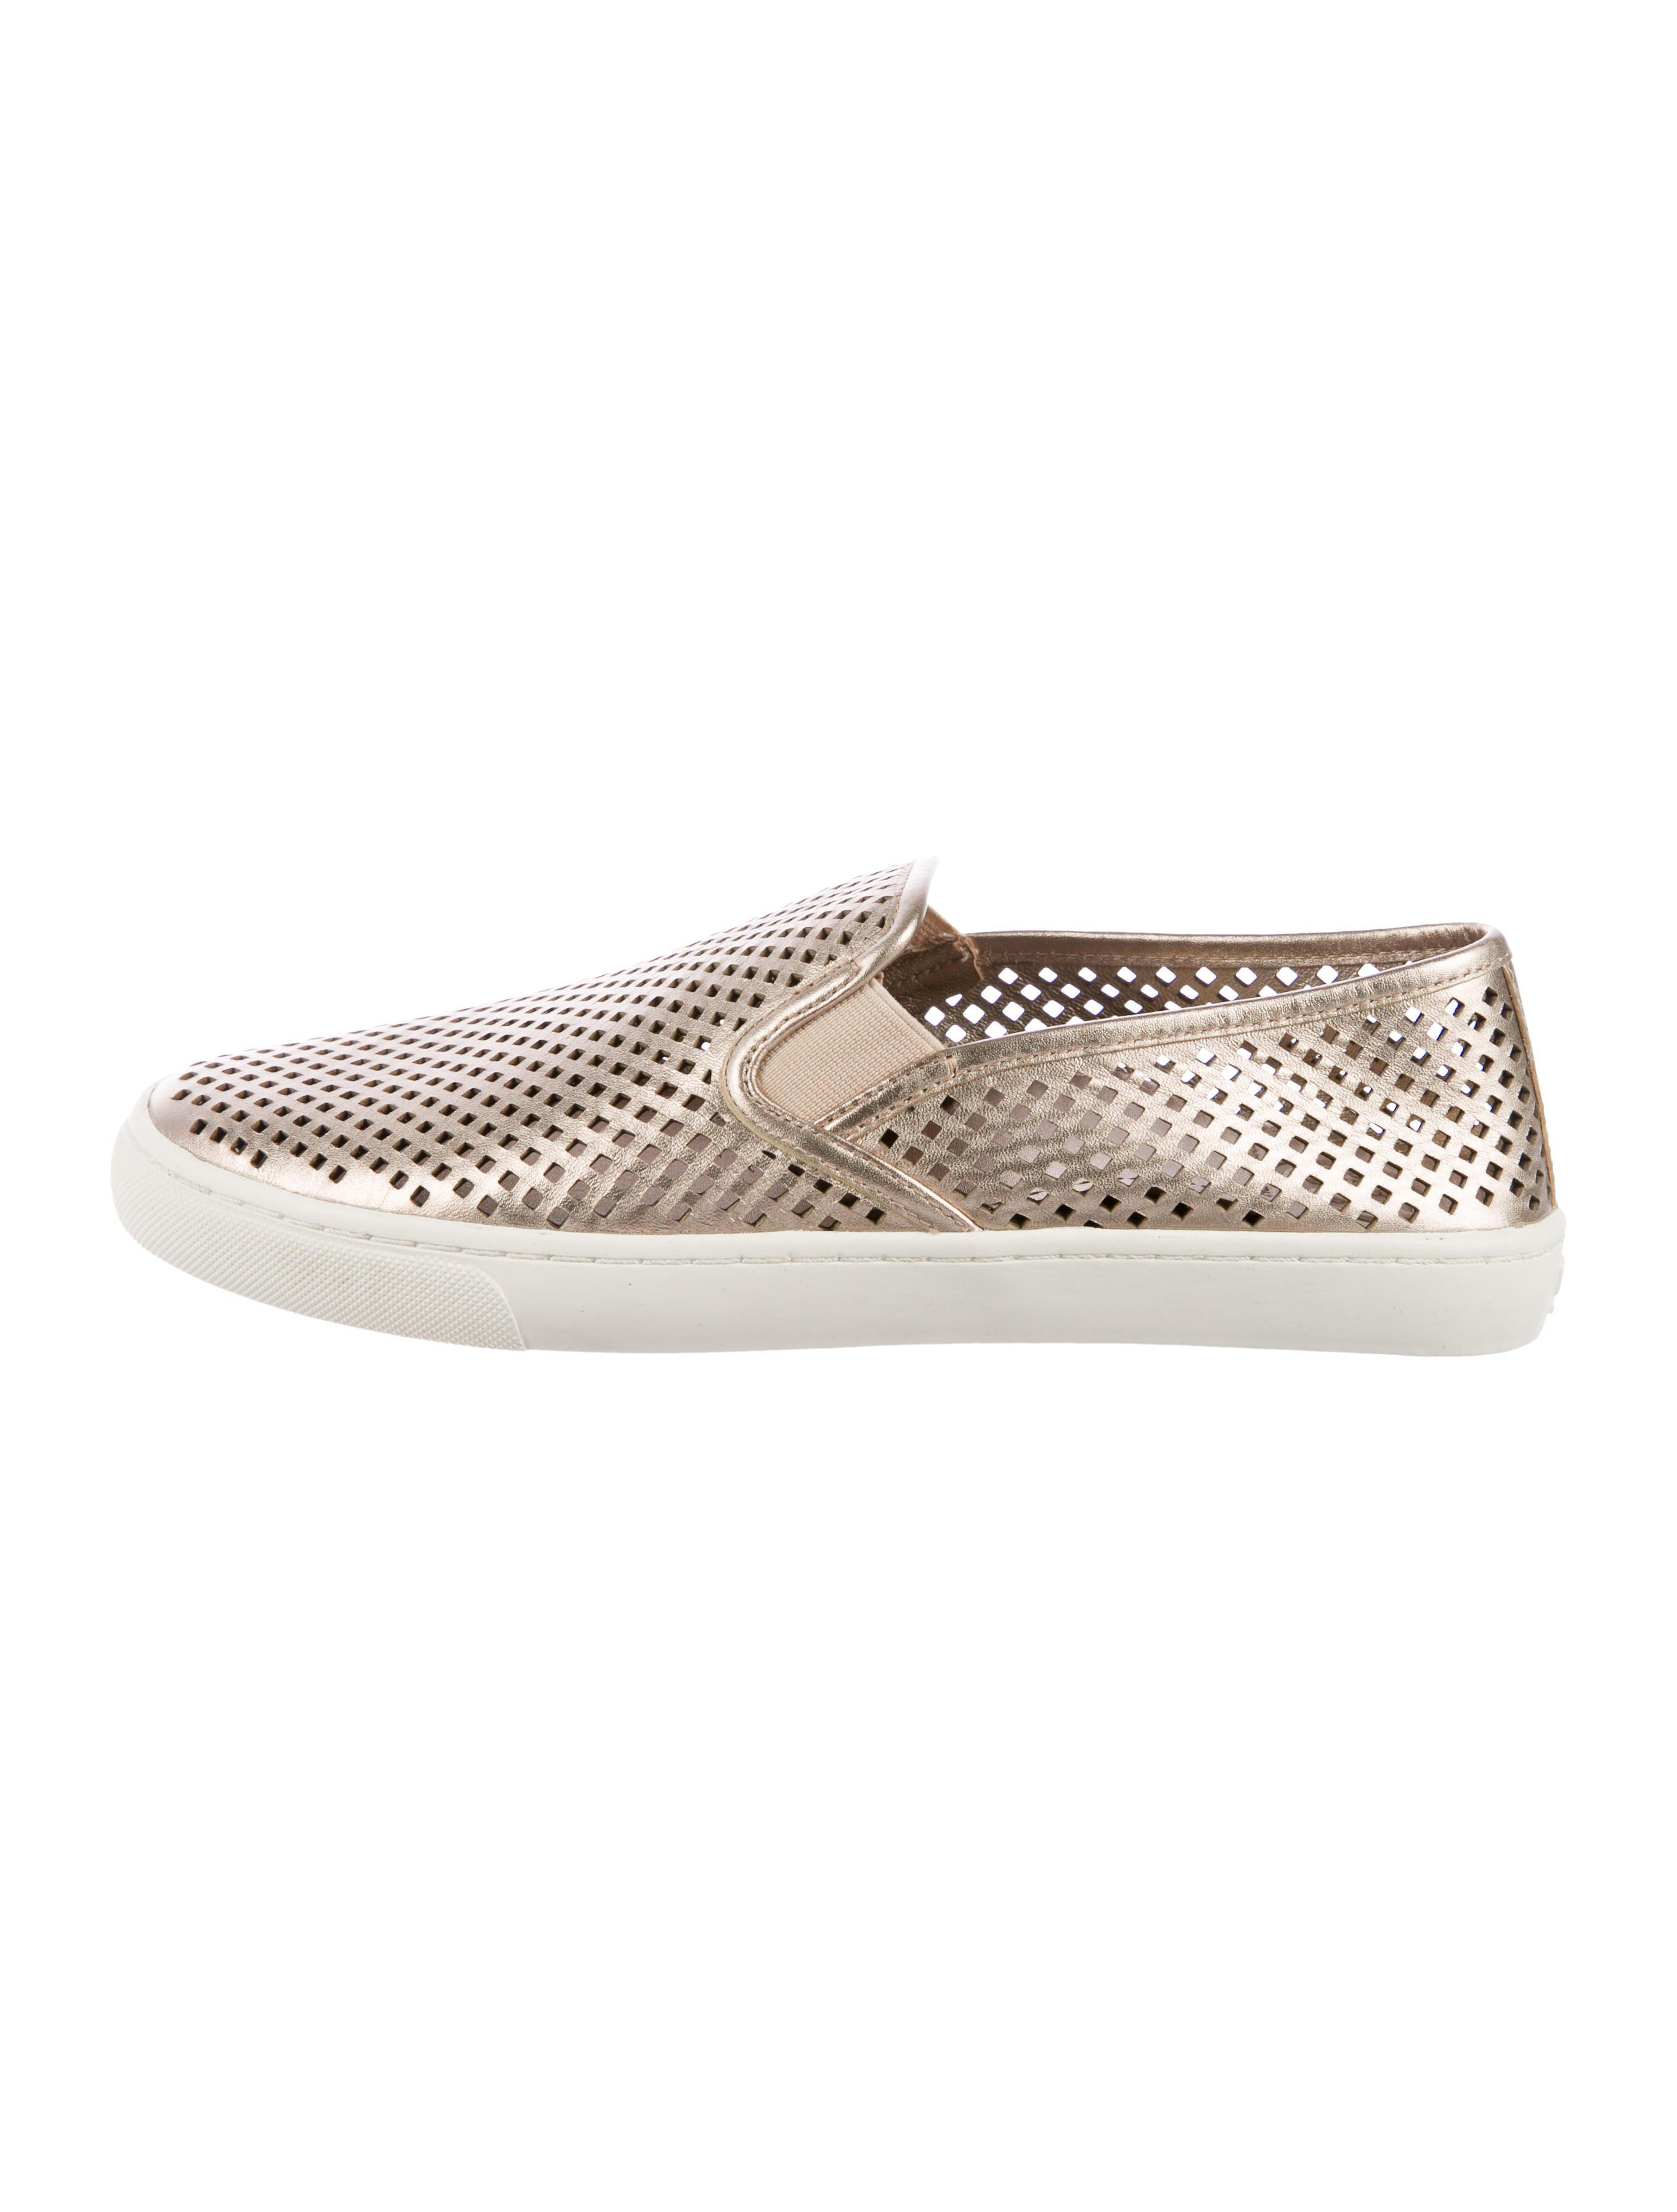 45a147610d493e Lyst - Tory Burch Perforate Leather Slip-on Sneakers Gold in Metallic